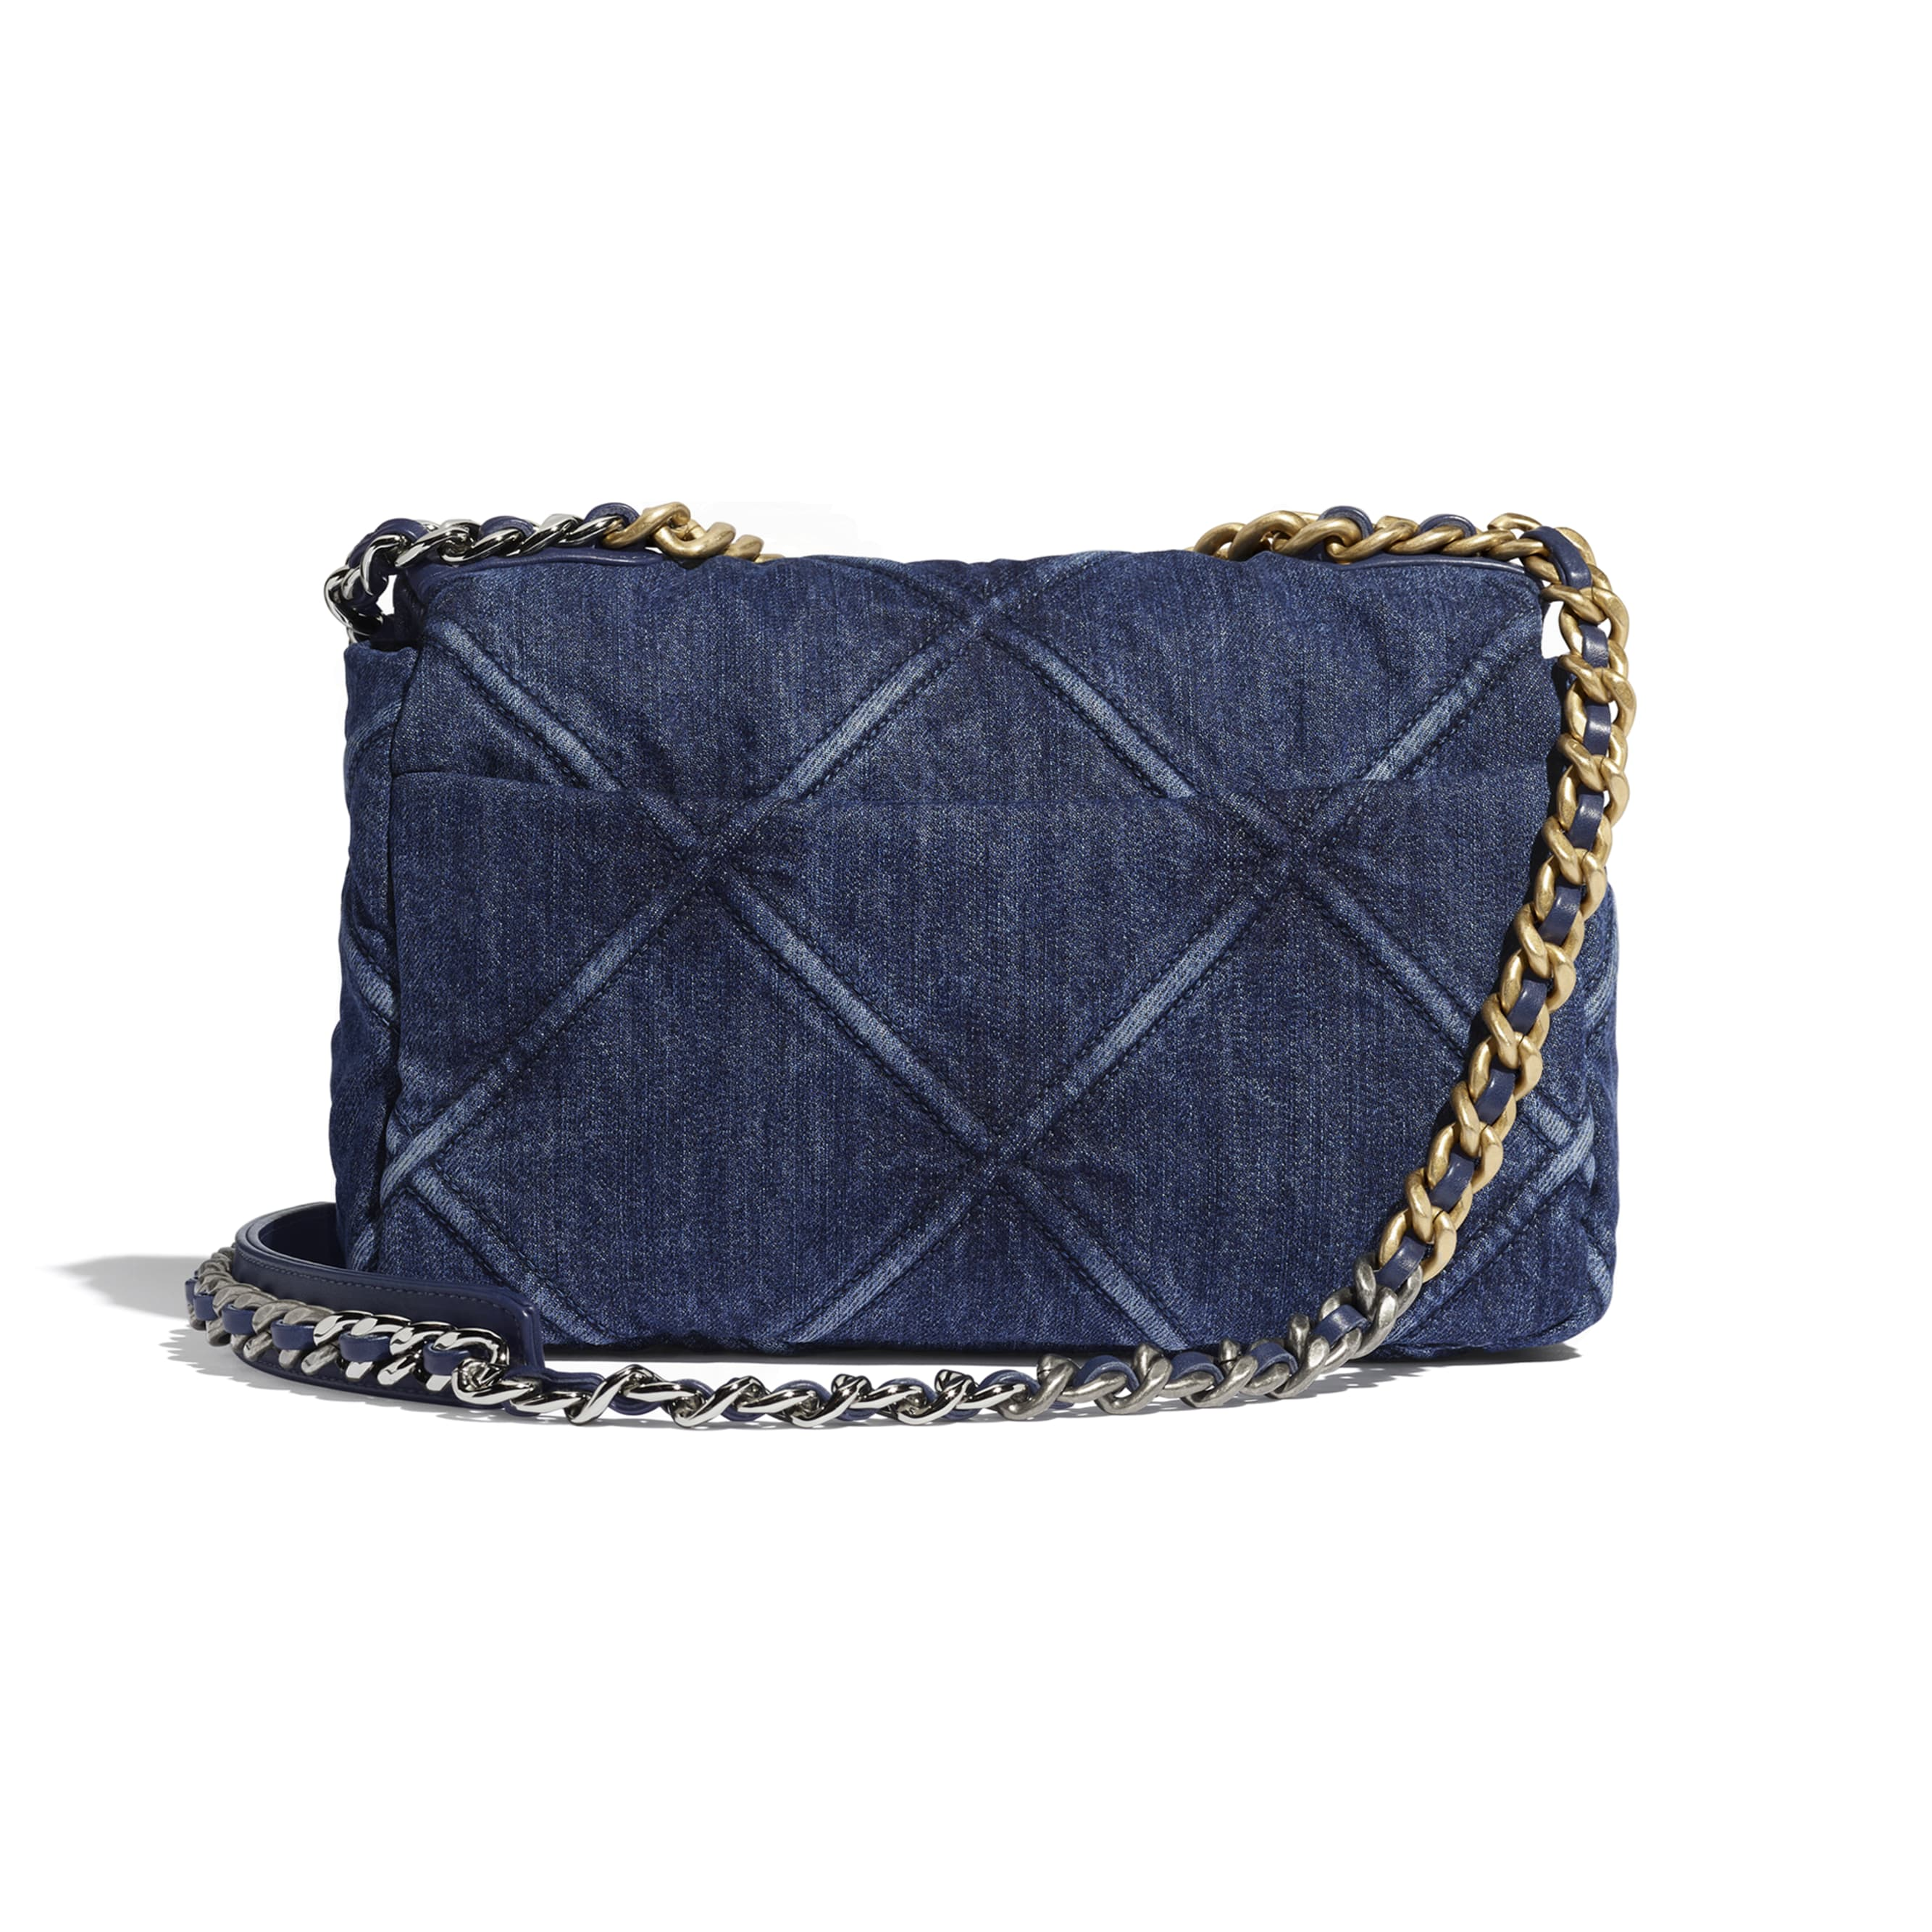 CHANEL 19 Flap Bag - Blue - Denim, Gold-Tone, Silver-Tone & Ruthenium-Finish Metal - Alternative view - see standard sized version